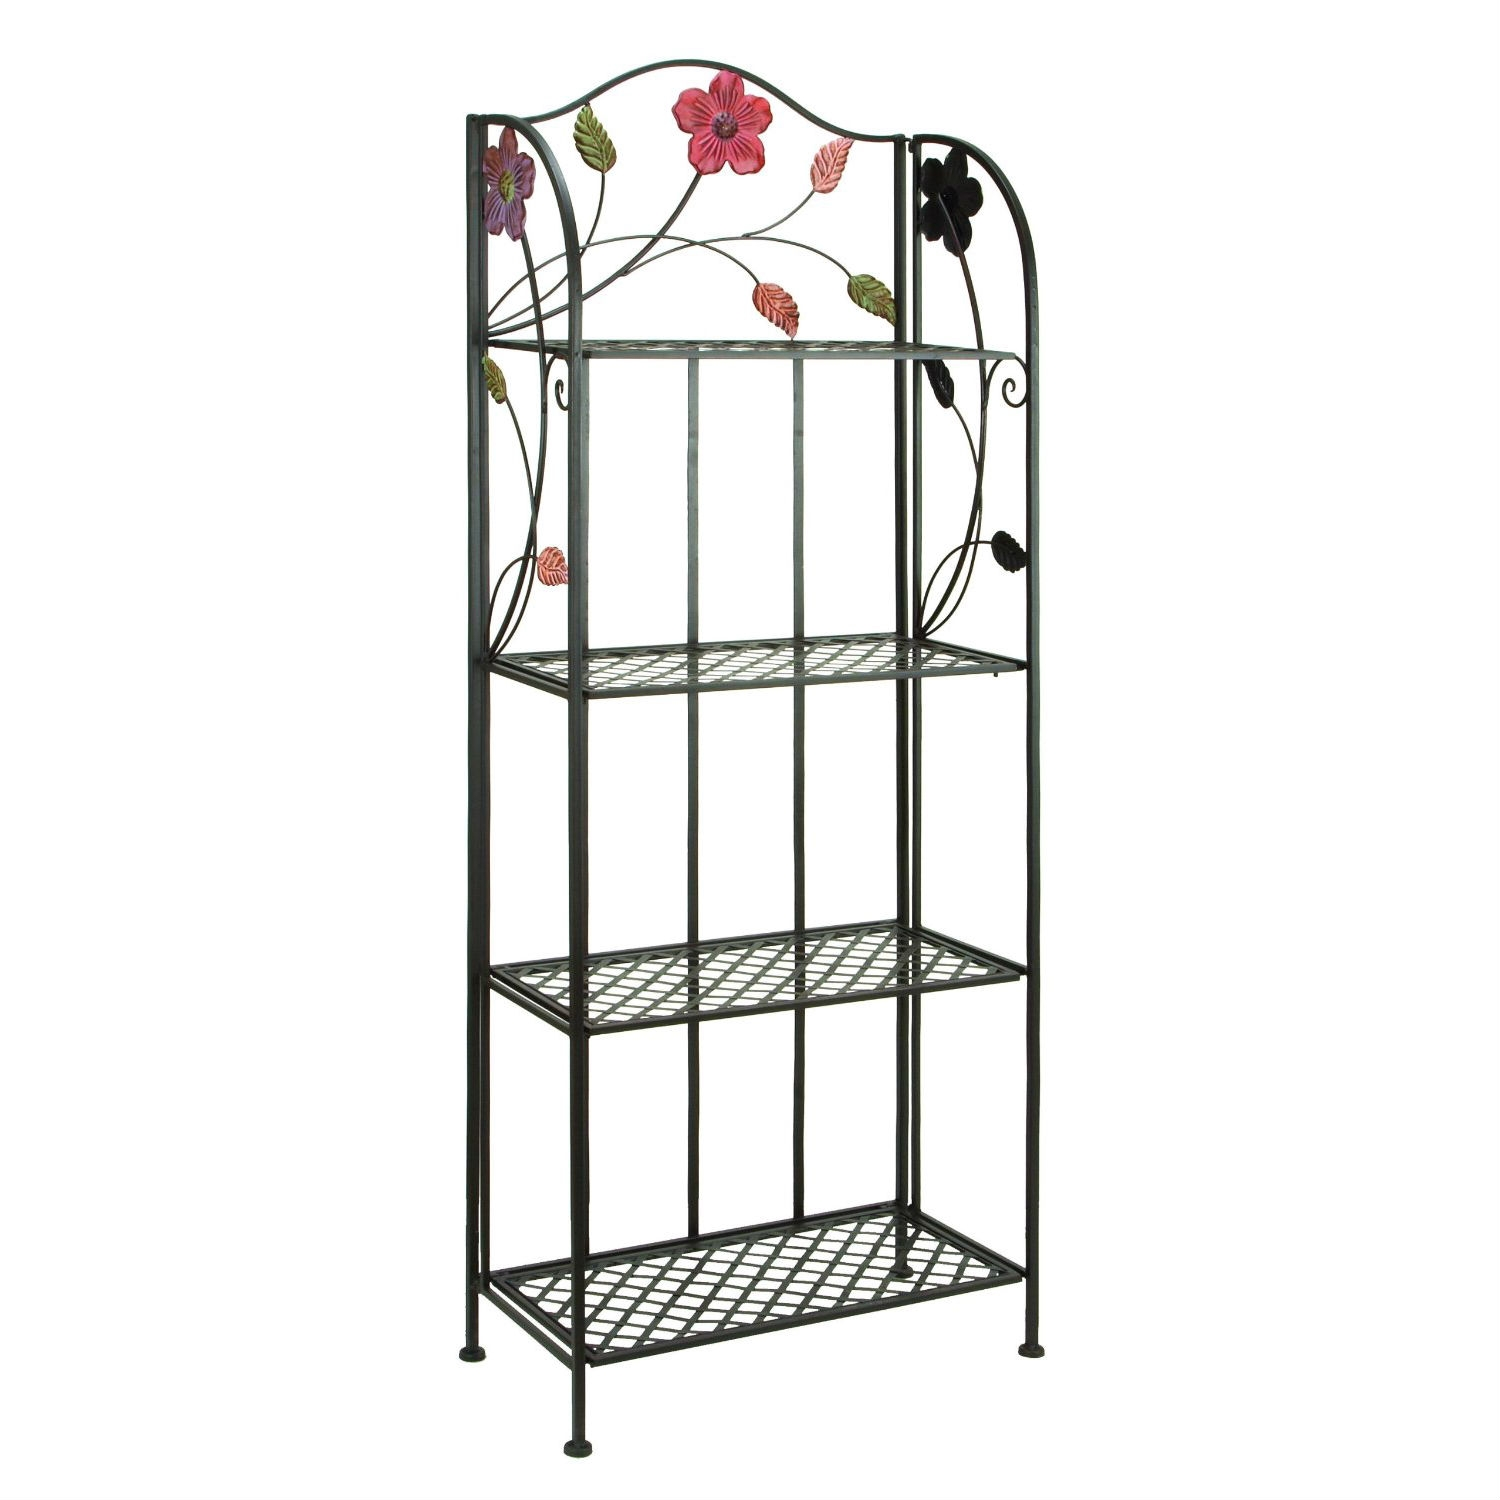 This Indoor Outdoor Metal Bakers Rack Plant Stand with Floral Accents is constructed of metal. Features 4 shelves for the display of planters and decor items. Durable, weather resistant construction. Ideal to enhance the look of any garden. Great functional and decorative addition for any setting. Suitable for both indoor and outdoor use.